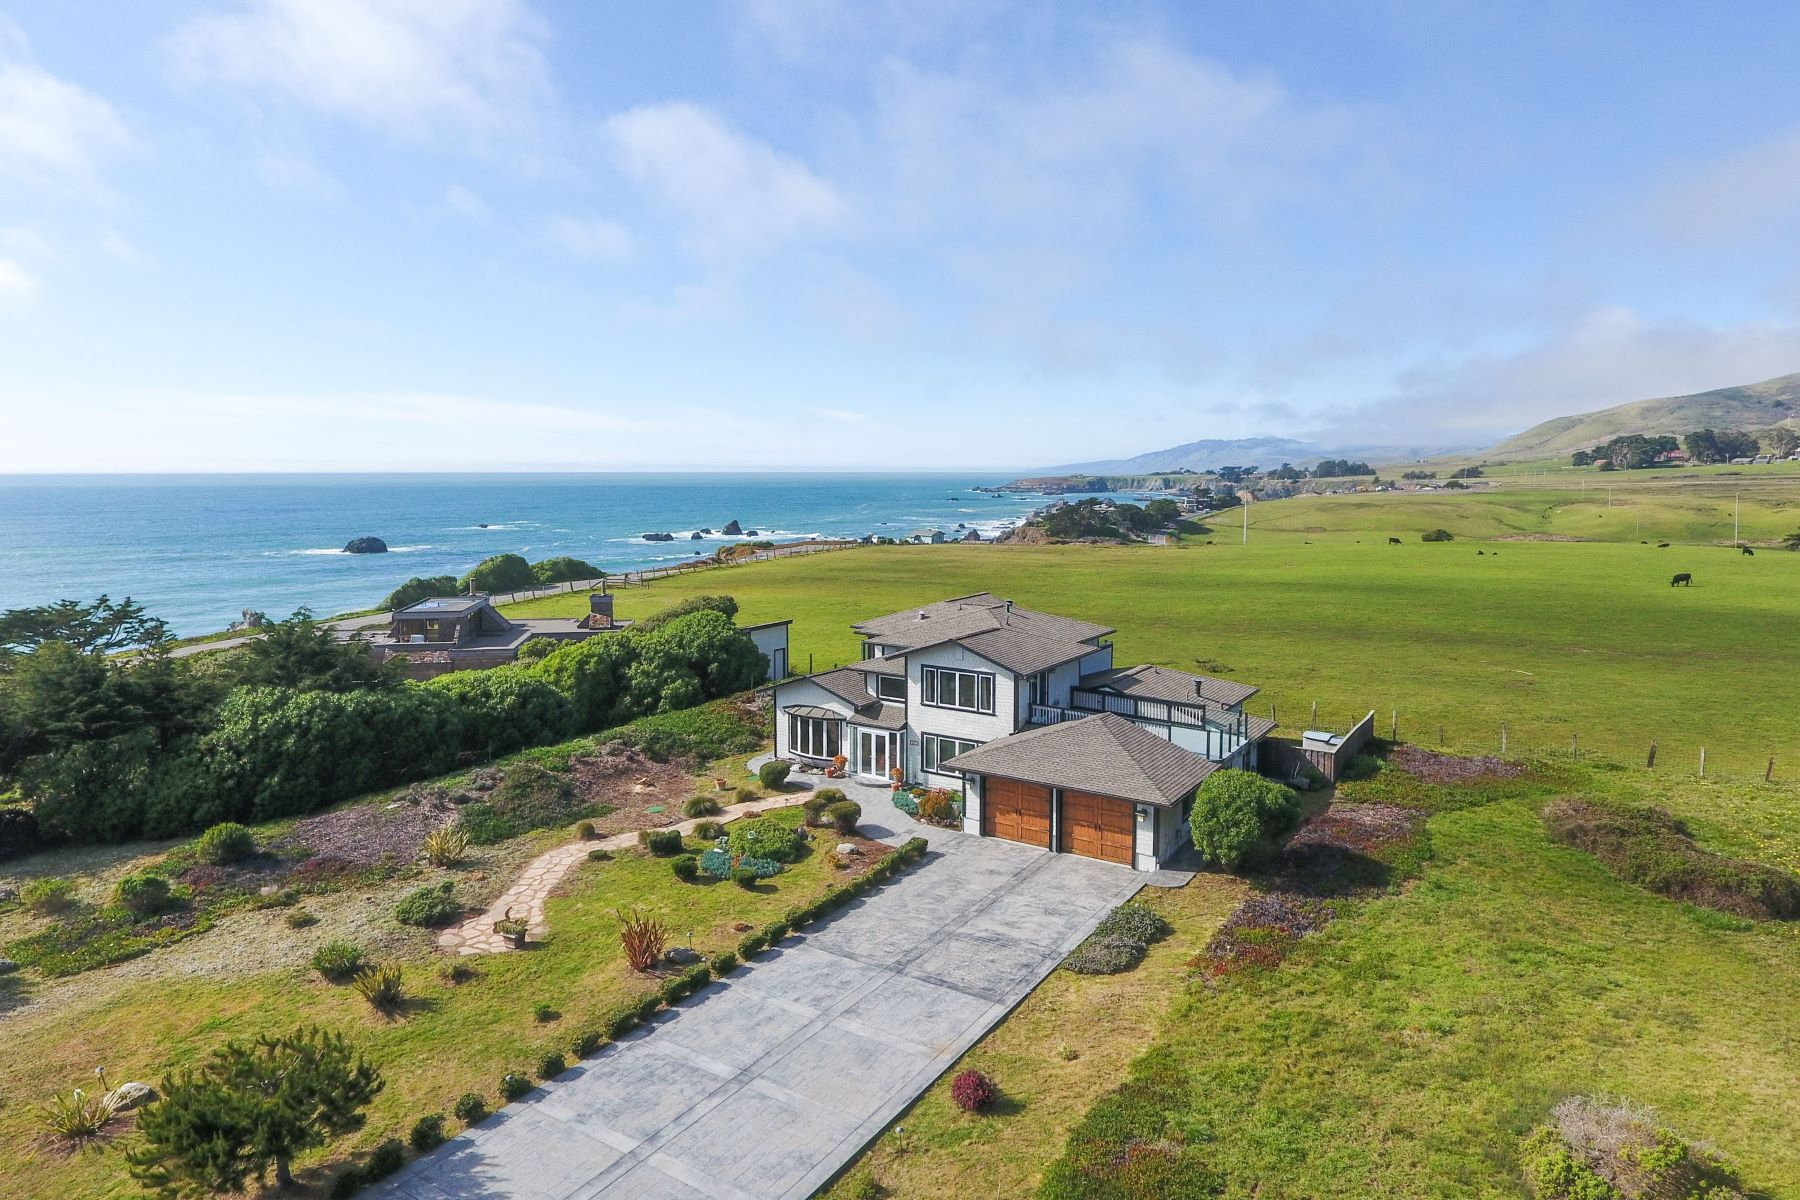 Maison unifamiliale pour l Vente à Sonoma Coast Custom-Built Home with White Water Views 125 Calle Del Sol Bodega Bay, Californie 94923 États-Unis